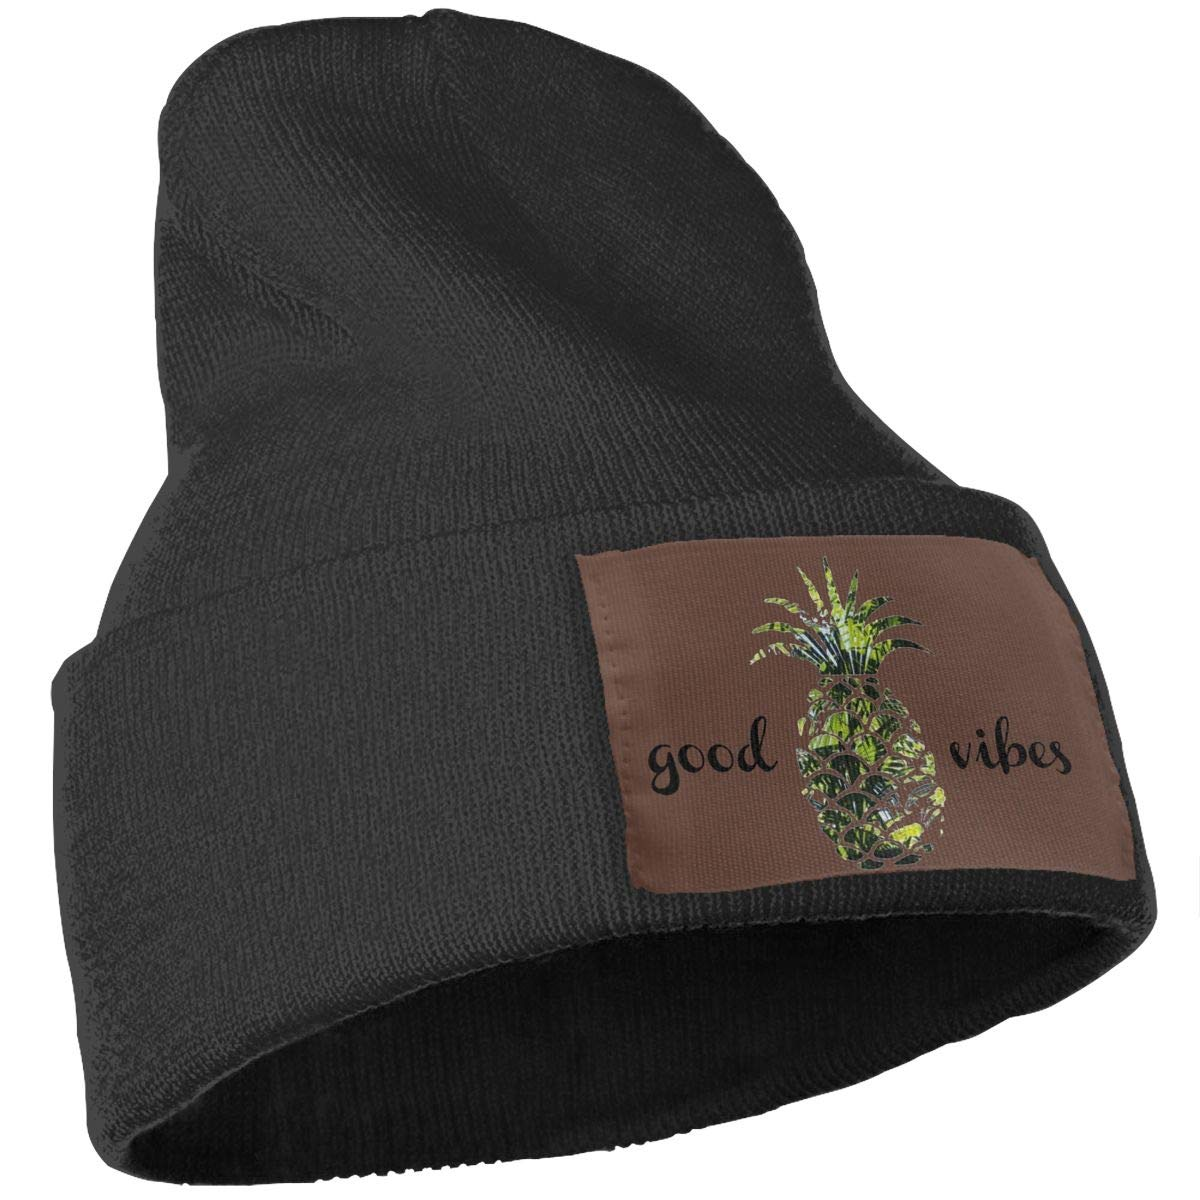 Good Vibes Pineapple Palm Tree Winter Beanie Cap for Women Men Serious Style Casual Beanies